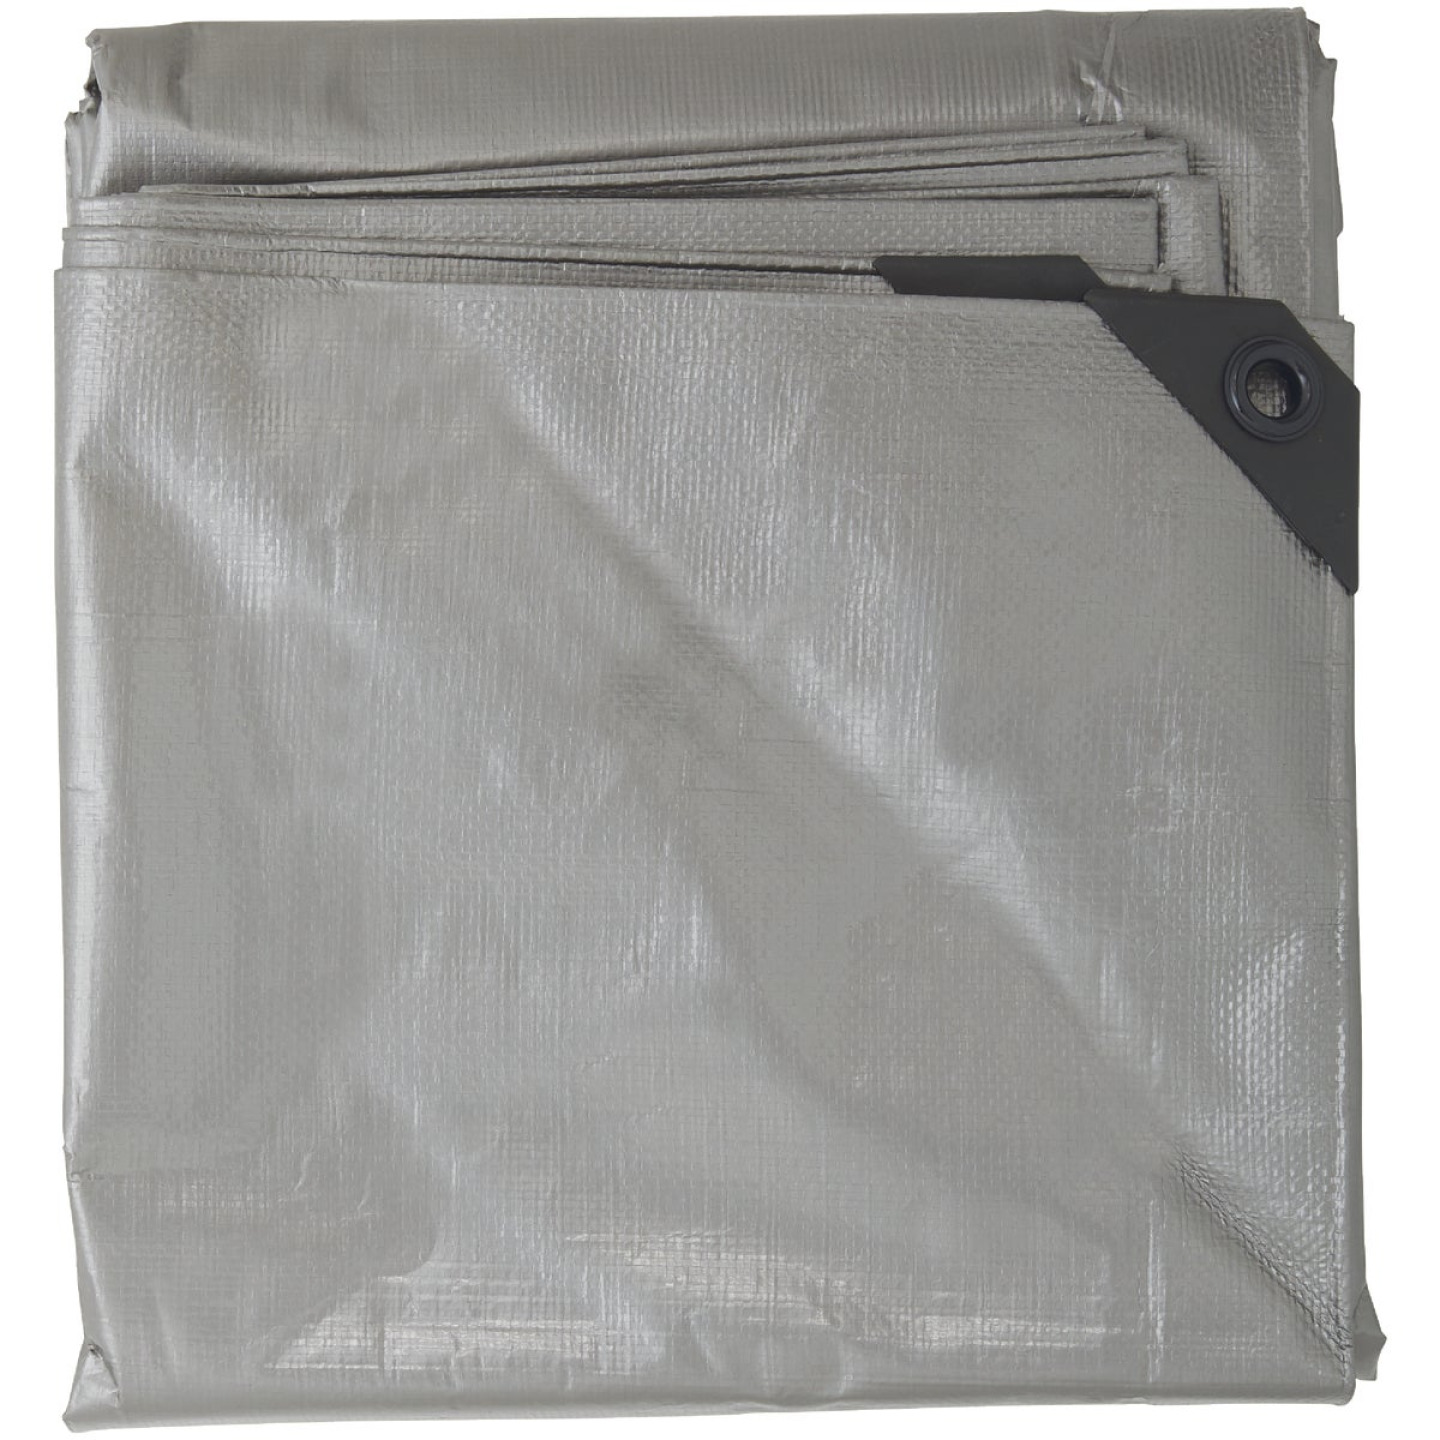 Do it Best Silver Woven 8 Ft. x 10 Ft. Heavy Duty Poly Tarp Image 2